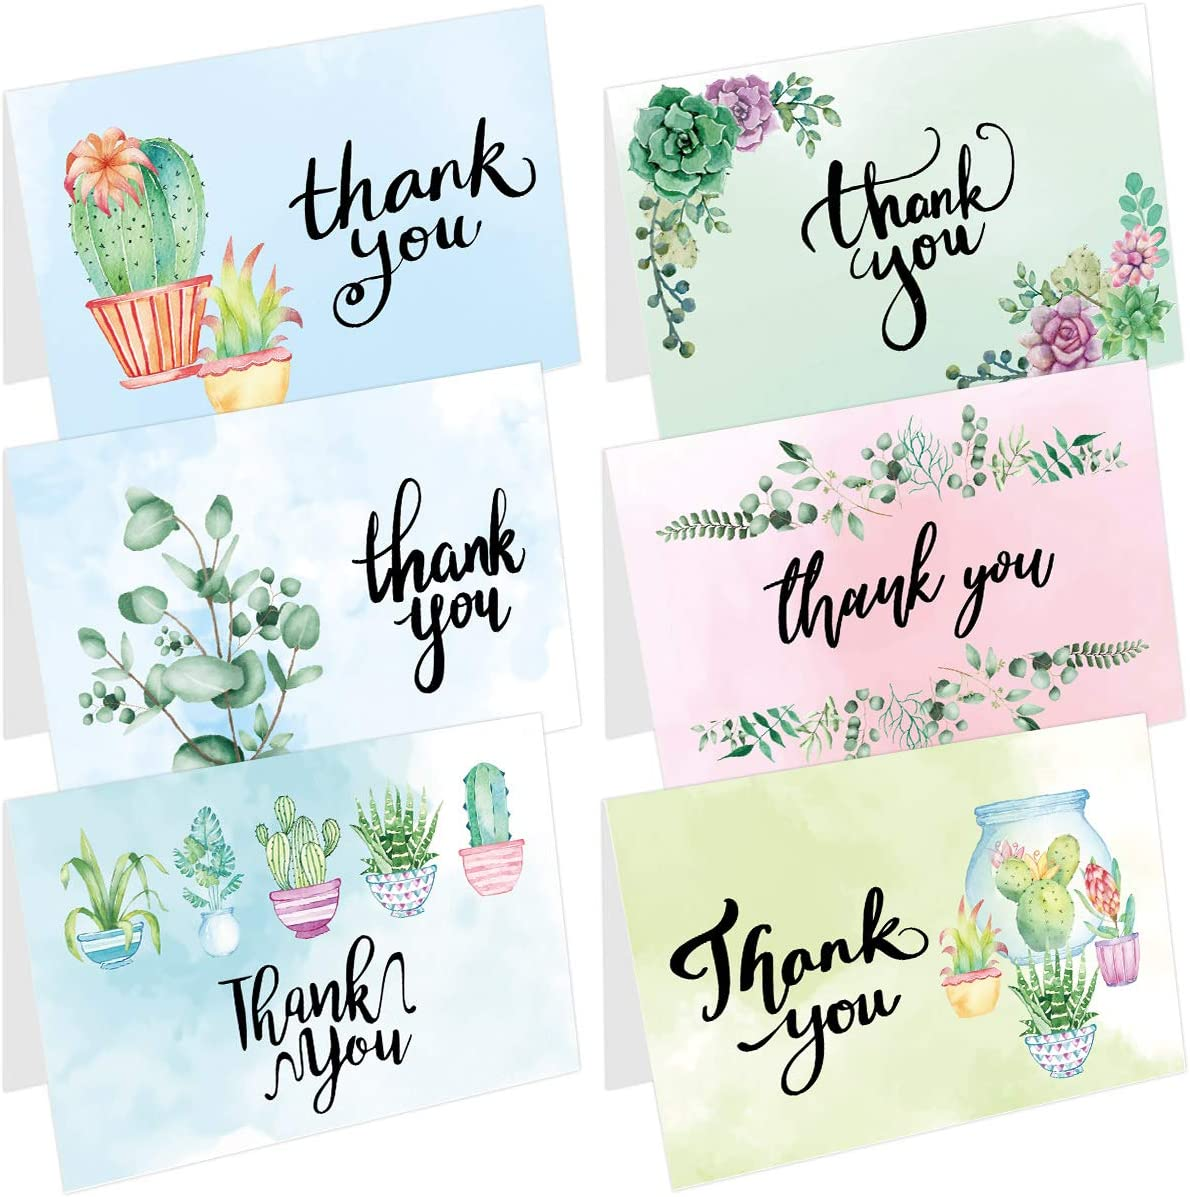 48 Thank You Cards Bulk Thank You Notes with 48 White Envelopes 50 Stickers 8 Watercolor Greenery Designs 4x6 Inch for Office School Business Wedding Baby Shower